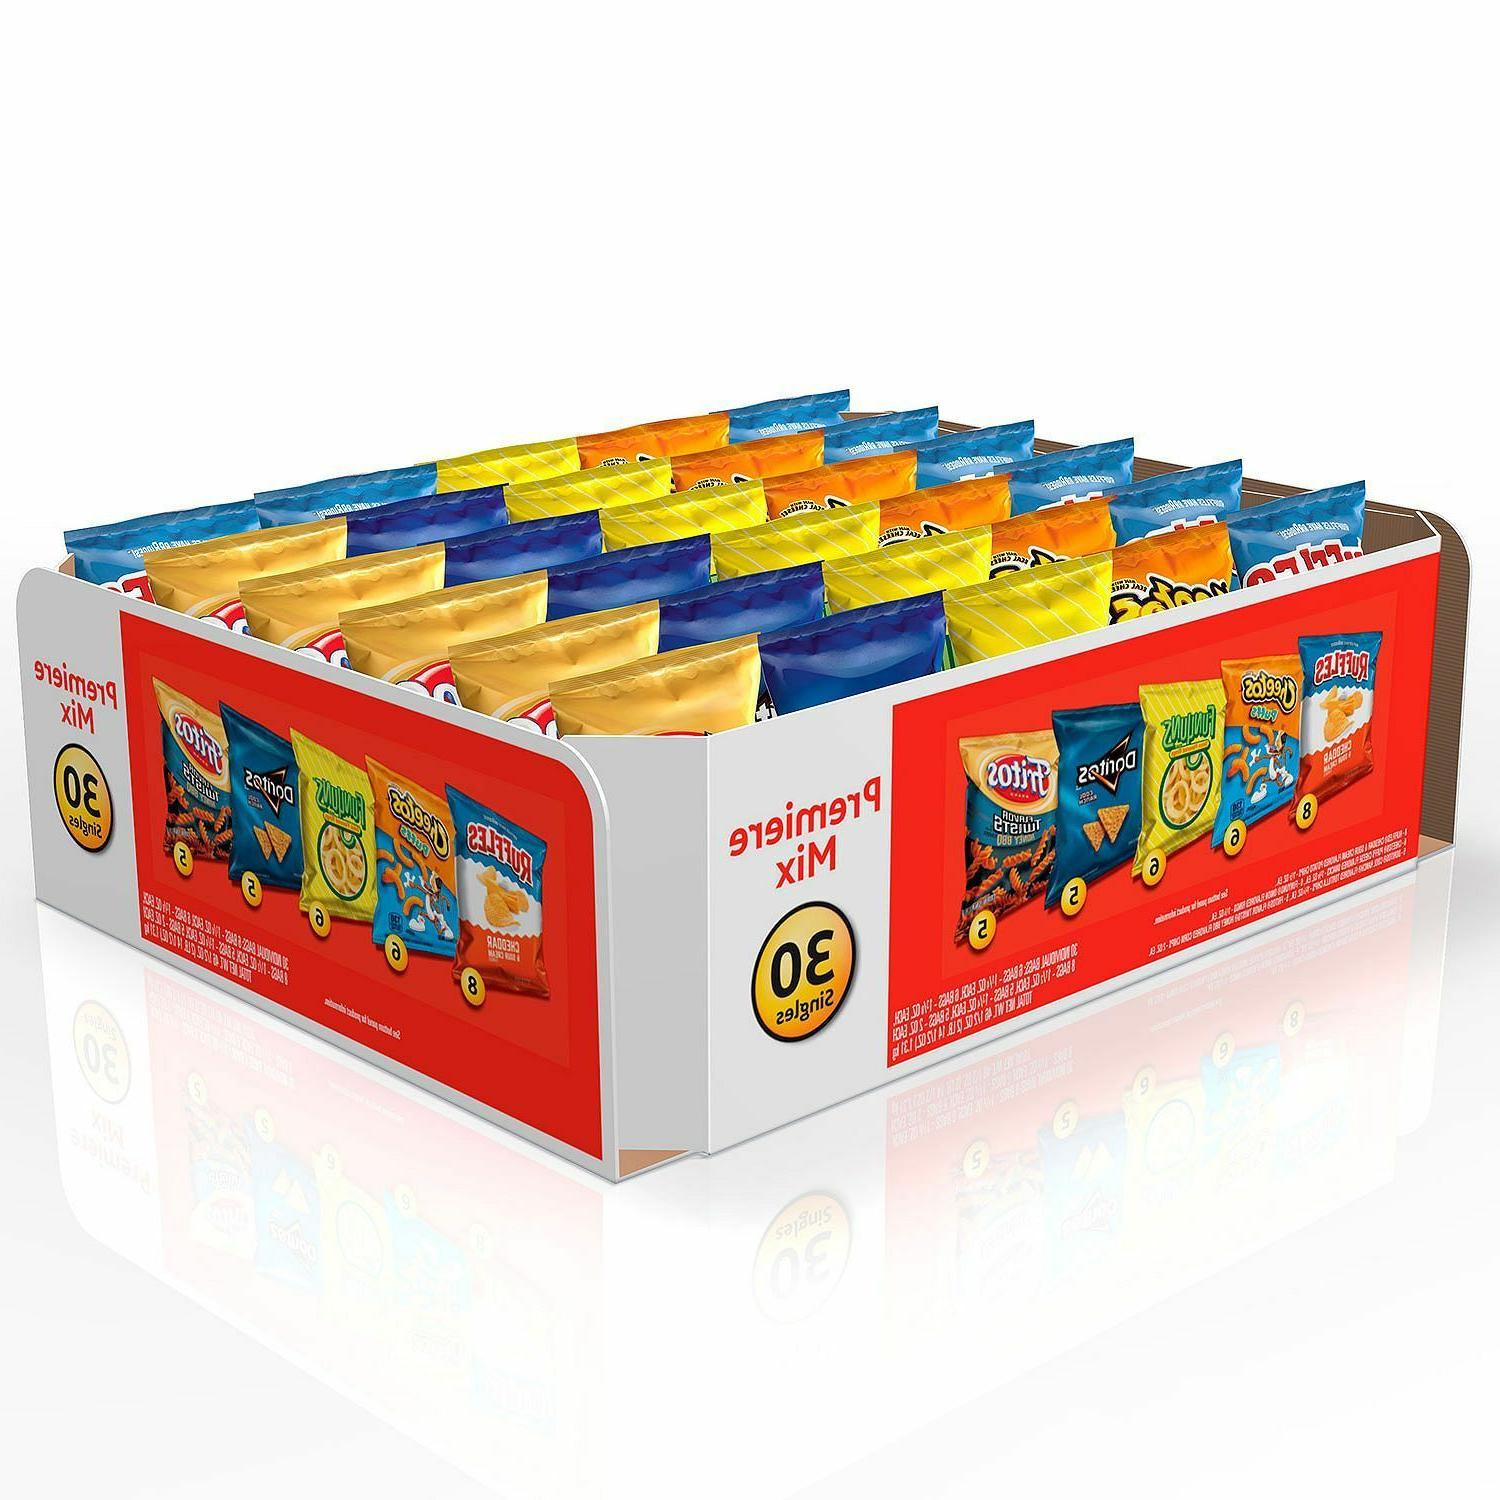 Frito-Lay Premiere Chips and Snacks Variety Pack